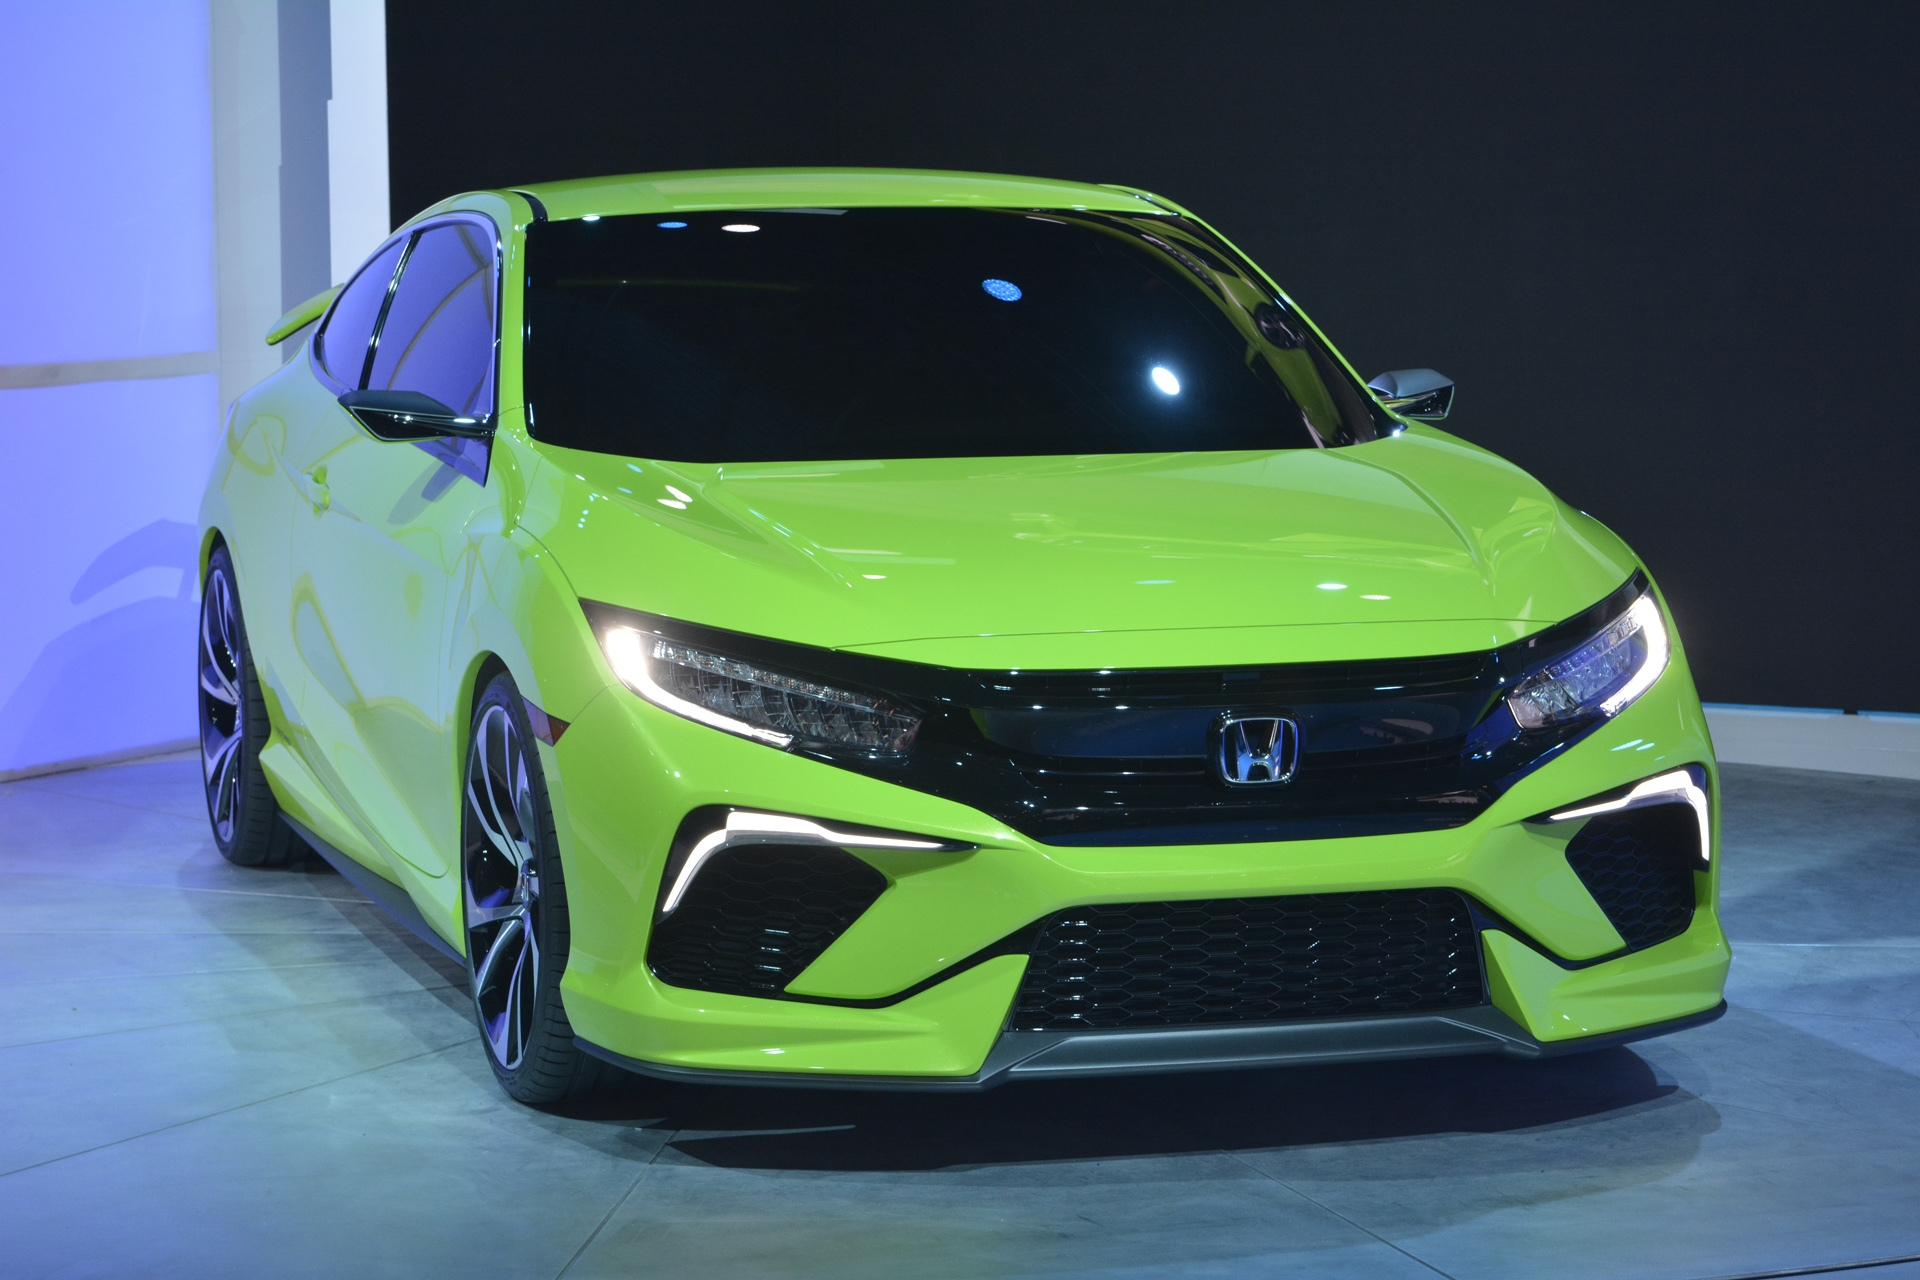 [Image: S0-Salon-de-New-York-Honda-Civic-Concept...349994.jpg]